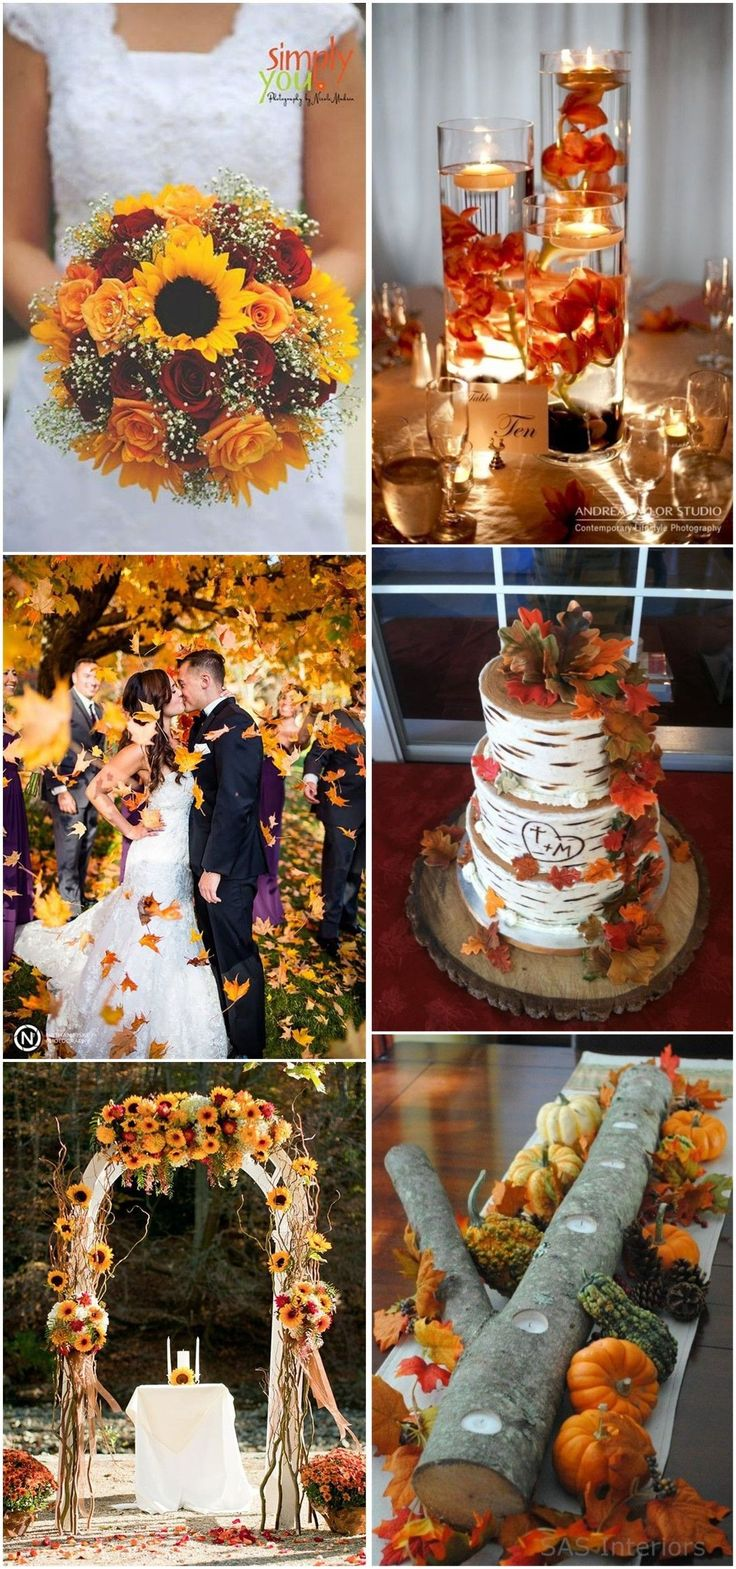 Best 25 fall wedding ideas on pinterest fall wedding for Autumn wedding decoration ideas